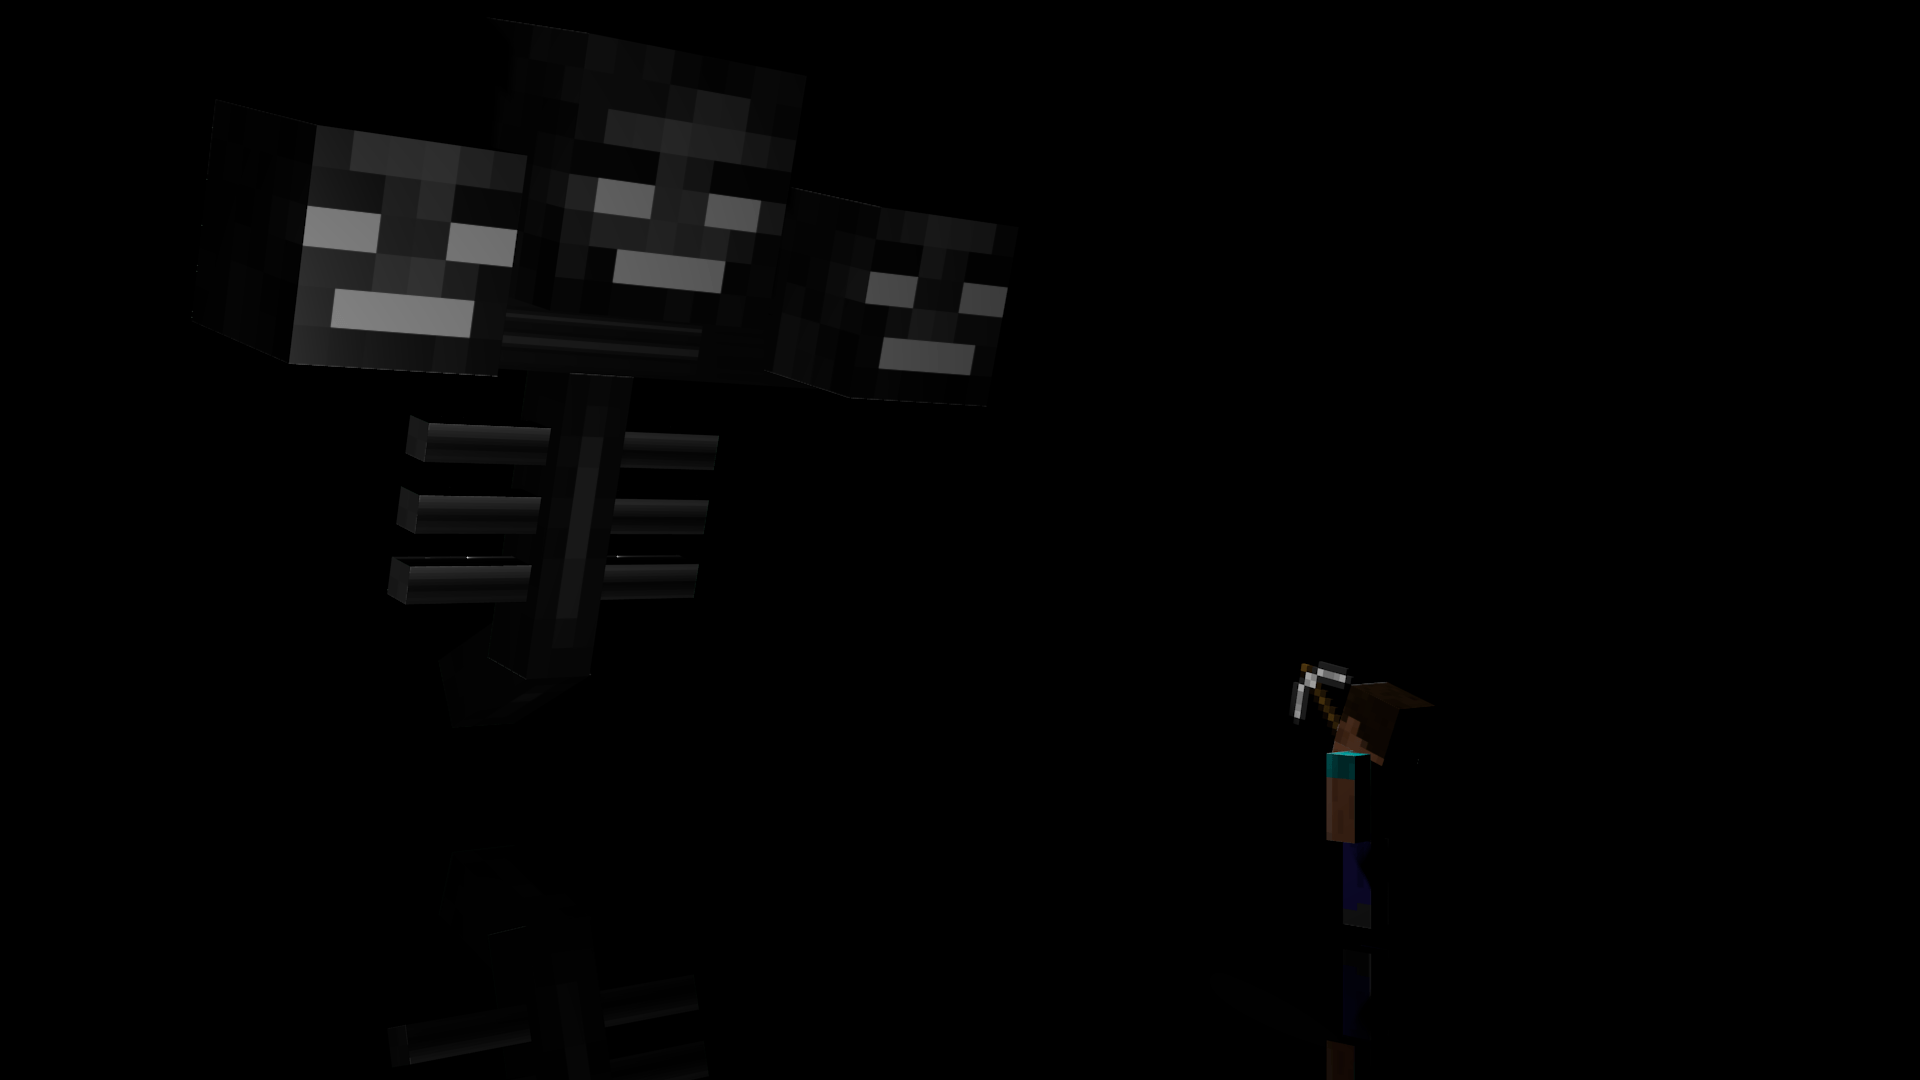 Minecraft Wither Wallpapers Wallpaper Cave